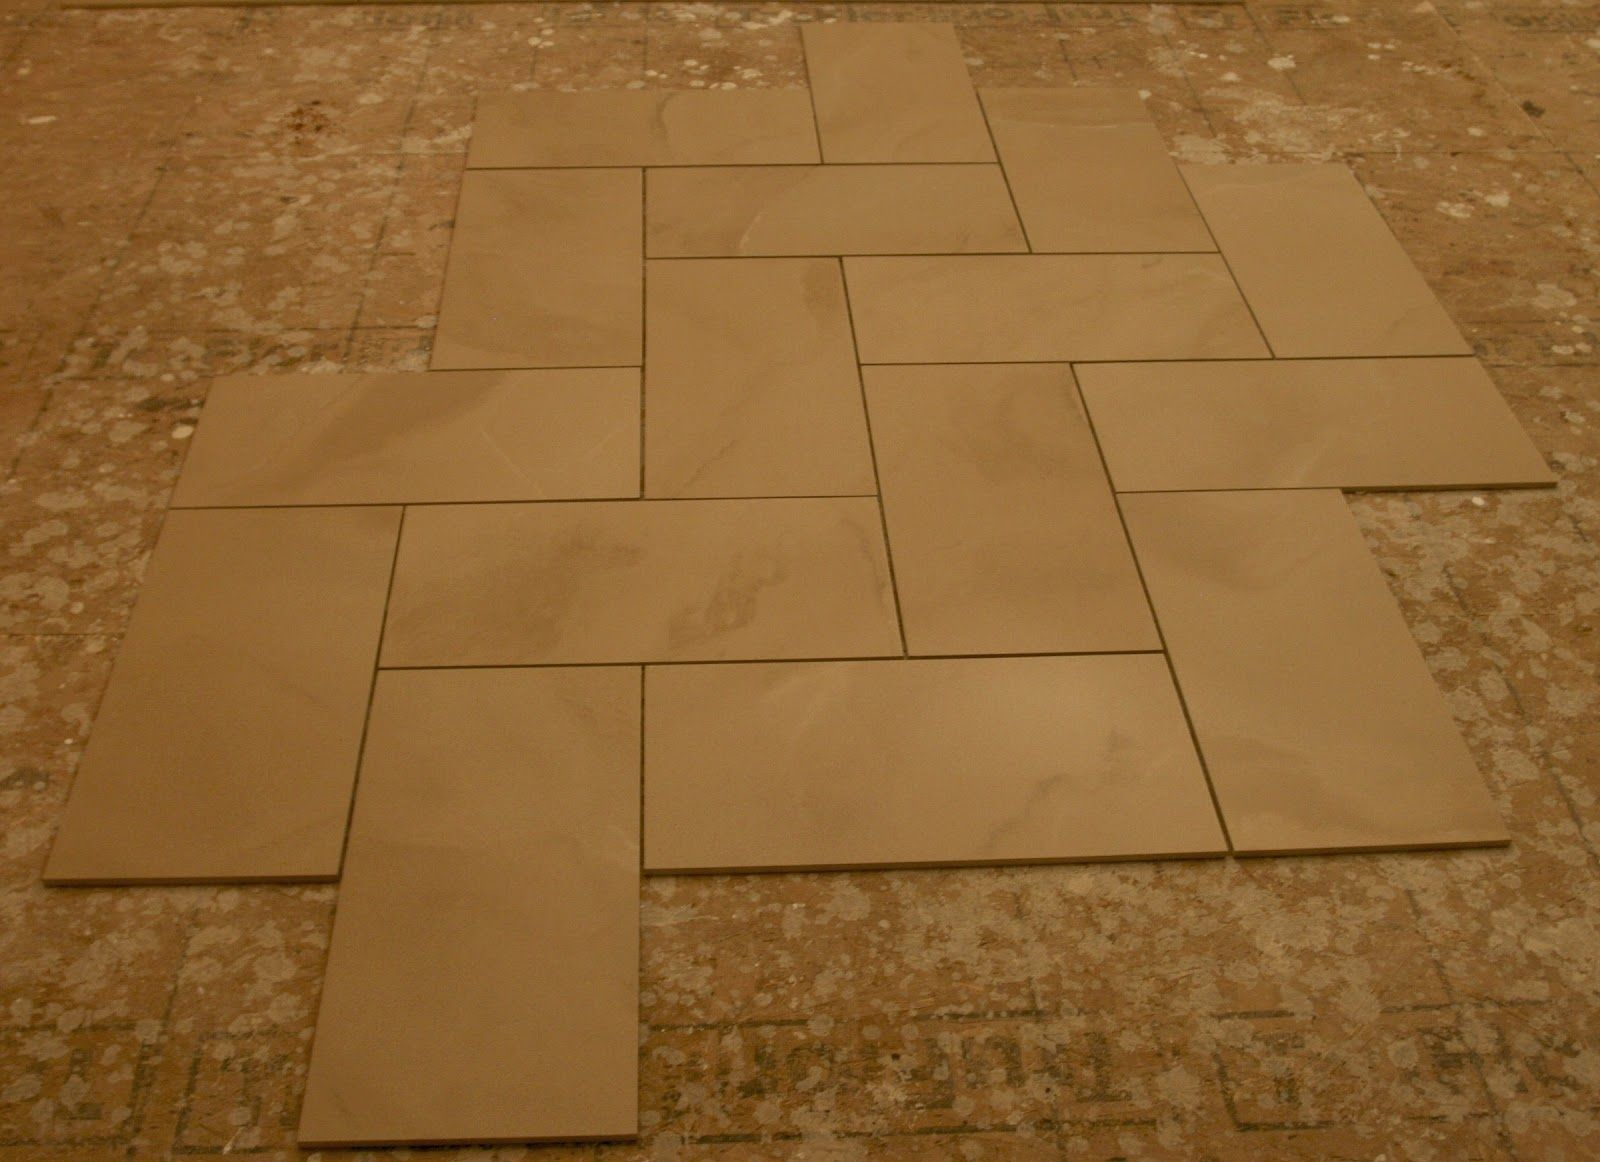 12x24 Tile Pattern Floor Pattern Options Vote For Your Favorite Tile Floor Floor Patterns